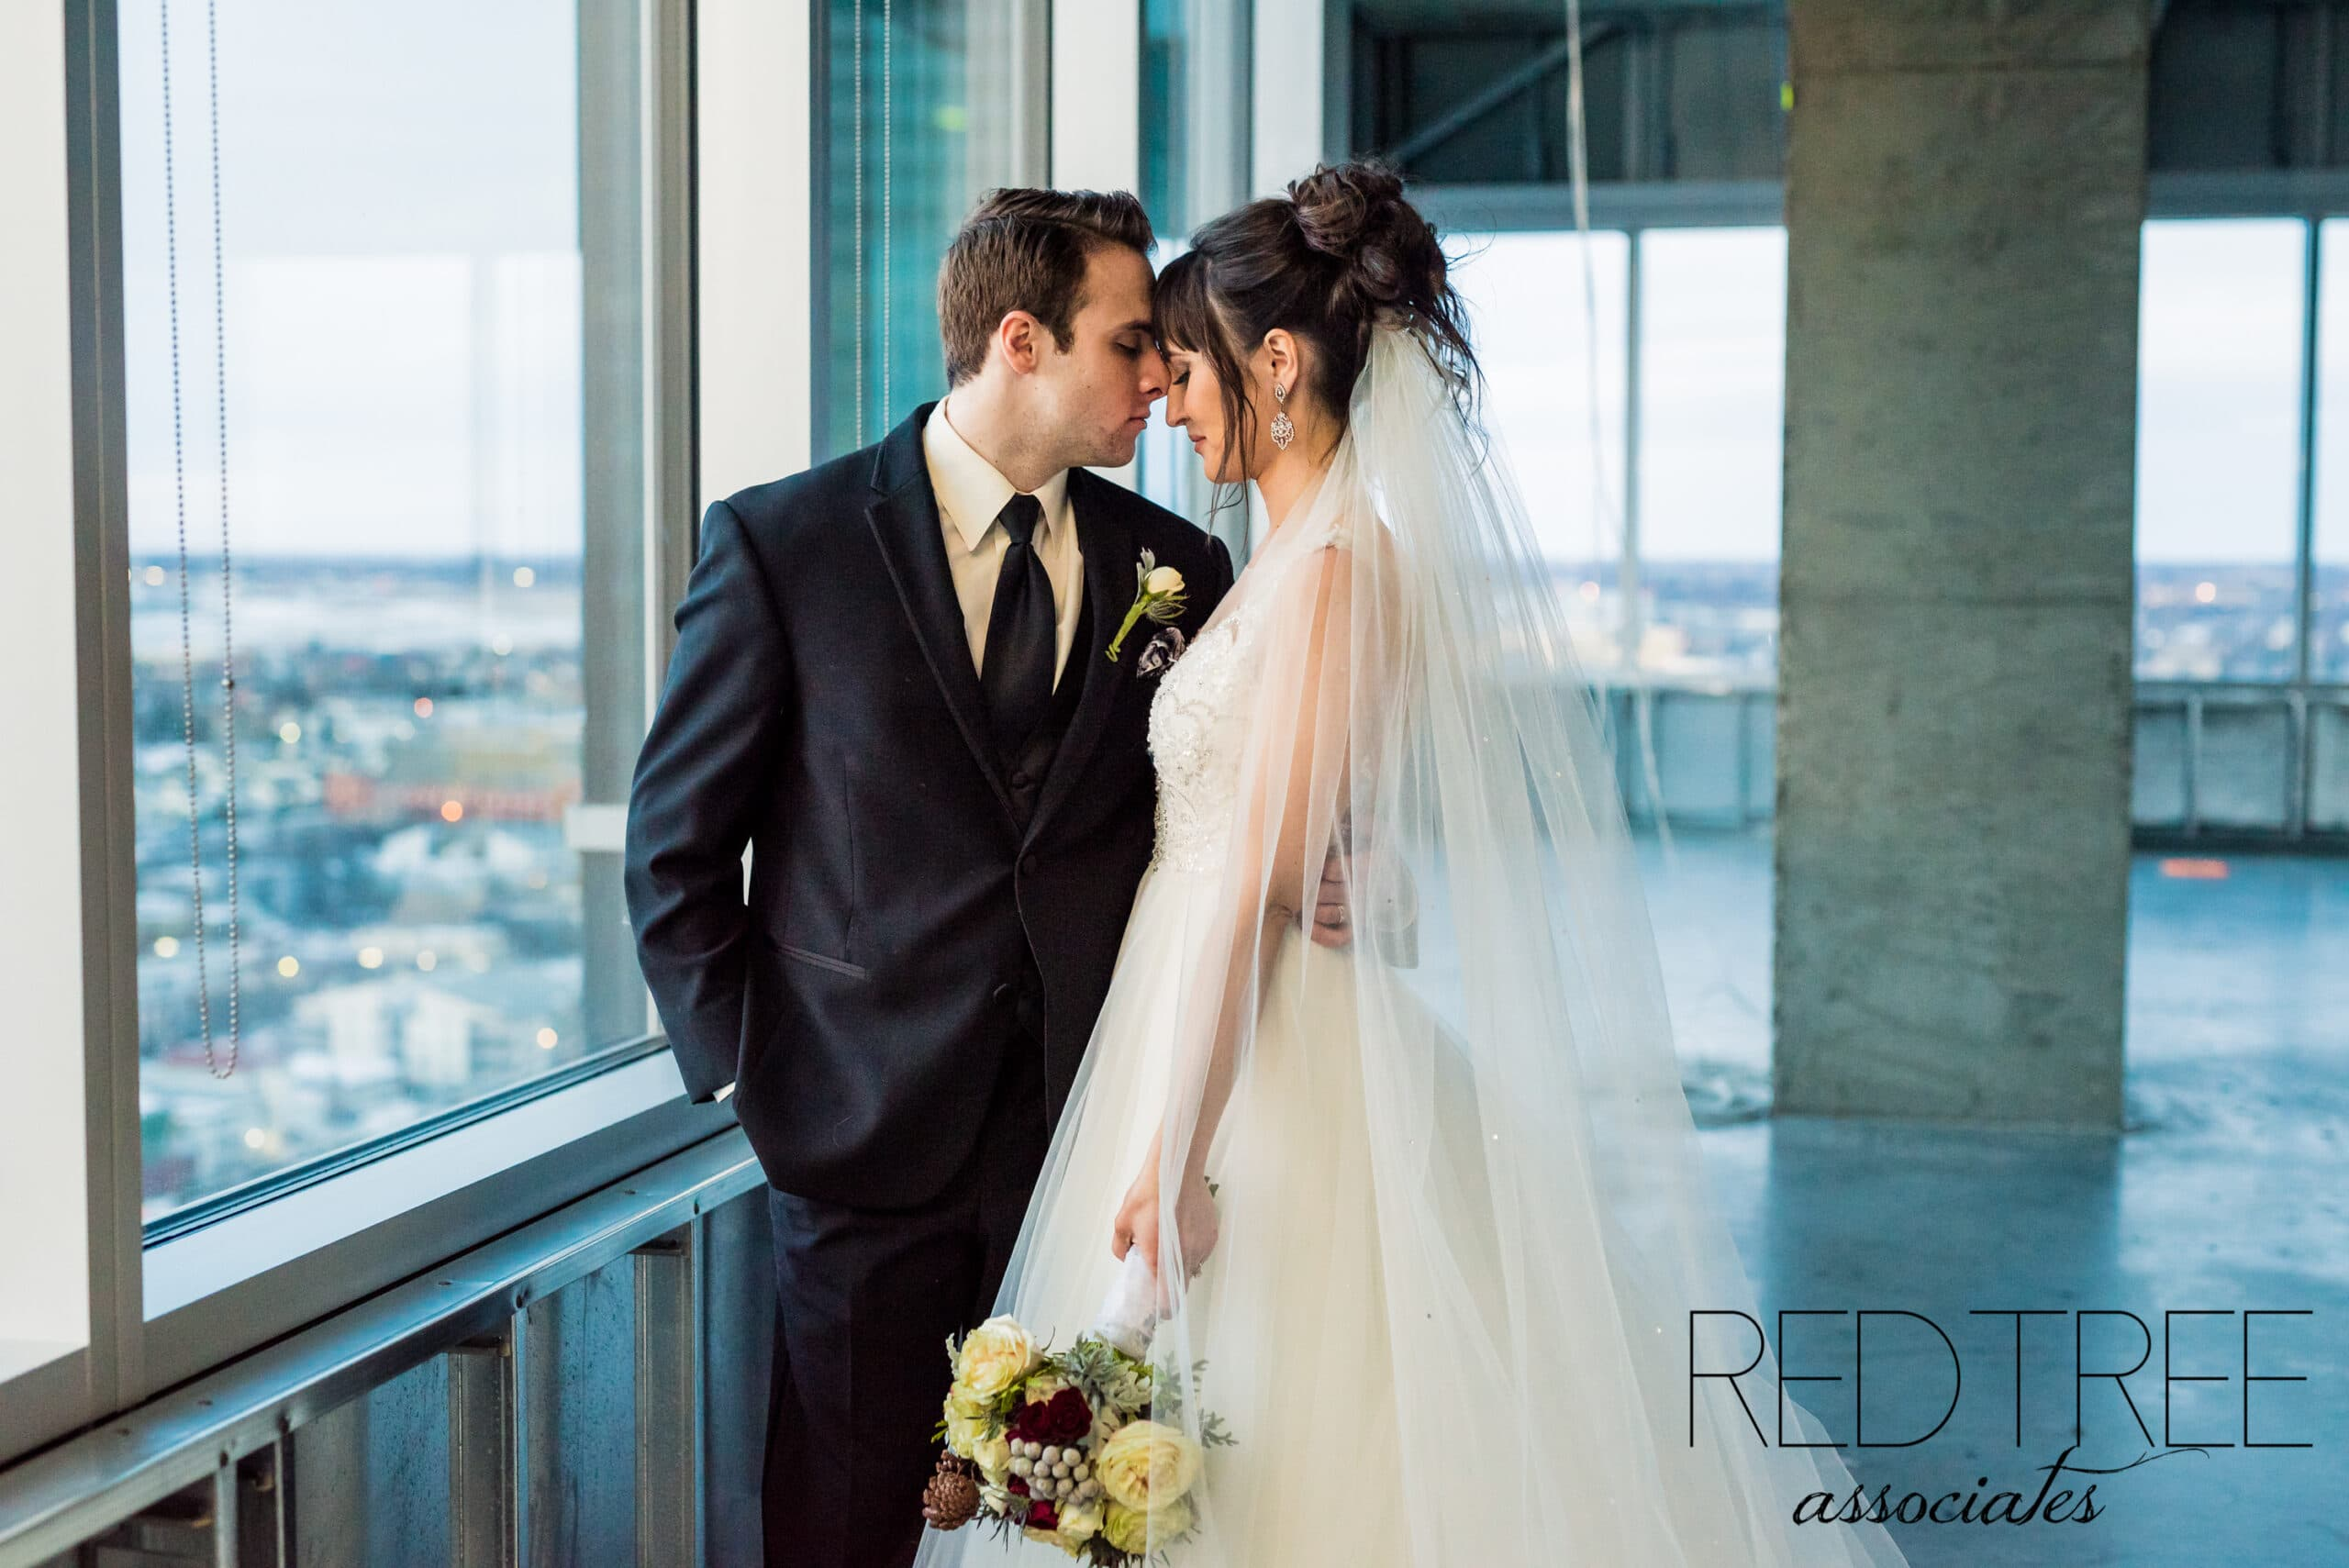 Colorful Bridal Gowns Edmonton Image - All Wedding Dresses ...